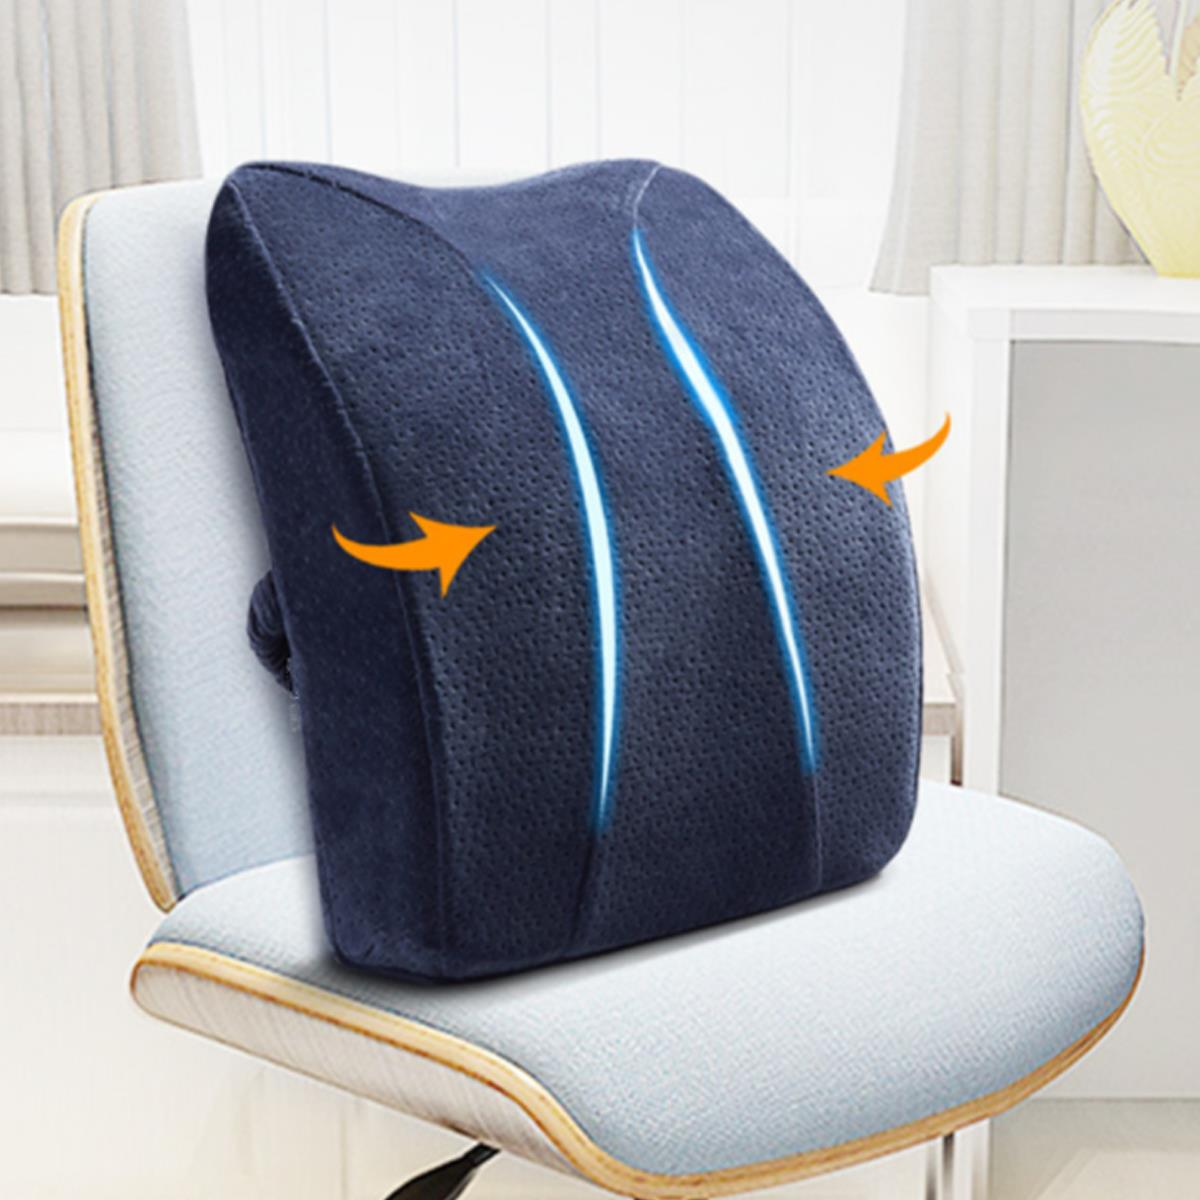 Memory Foam Seat Back Cushion Lumbar Waist Support for Car Home Office Chair Rest